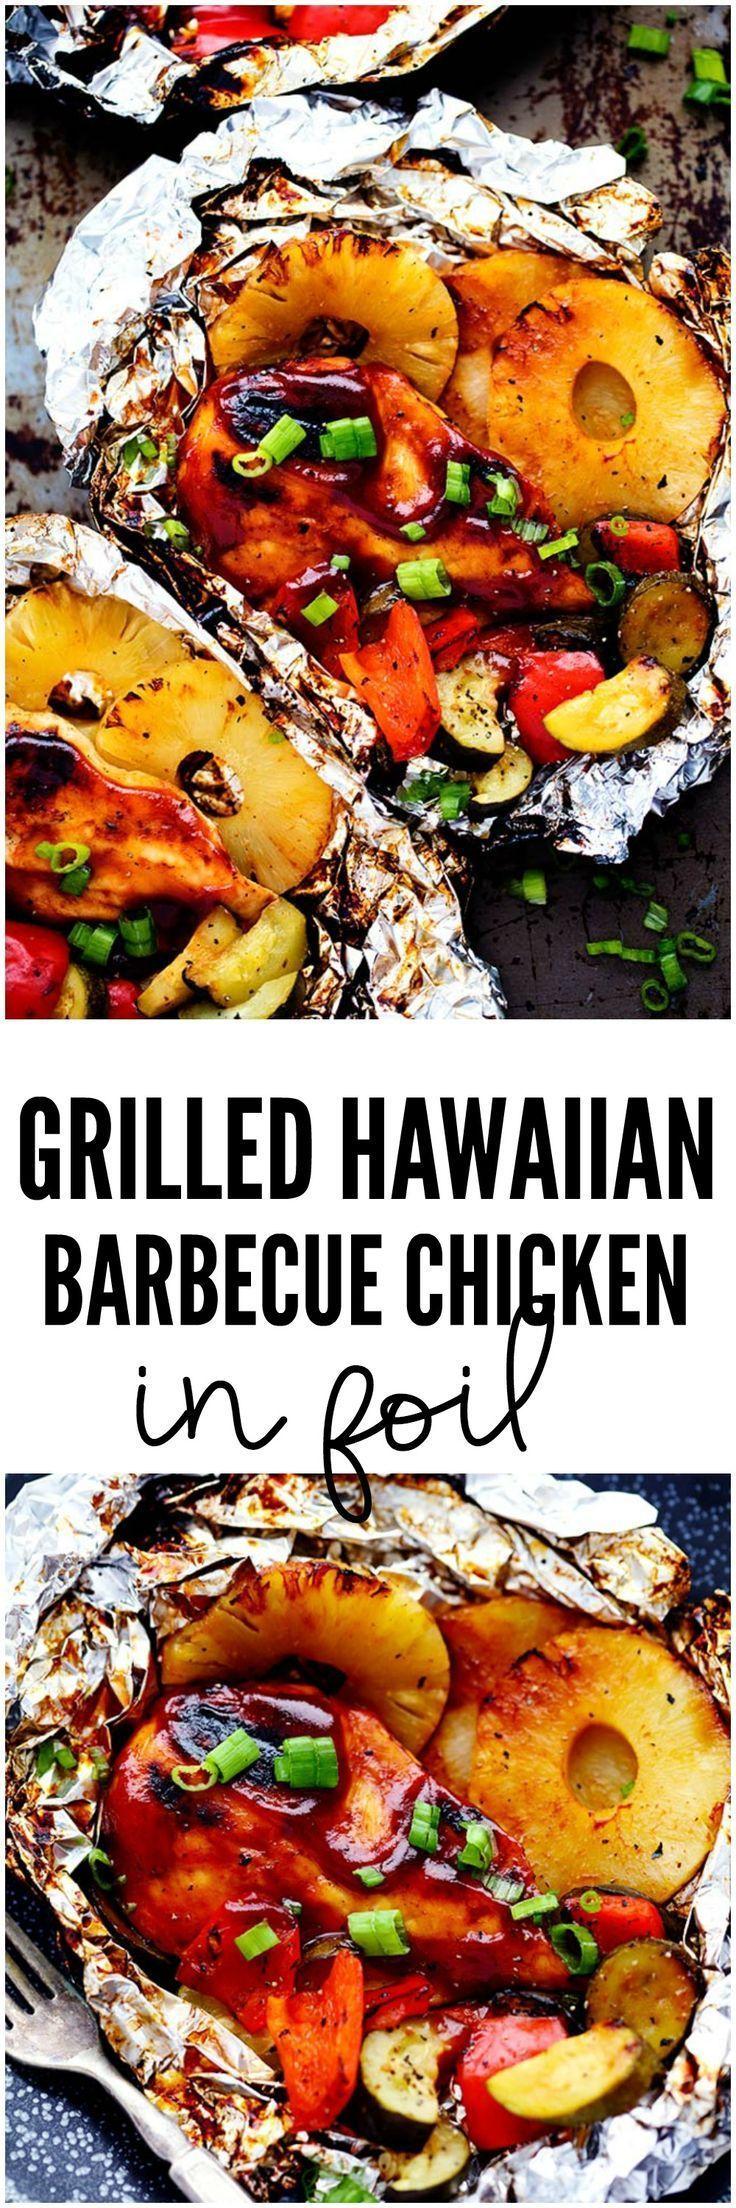 Idee Repas Barbecue.Grilled Hawaiian Barbecue Chicken In Foil